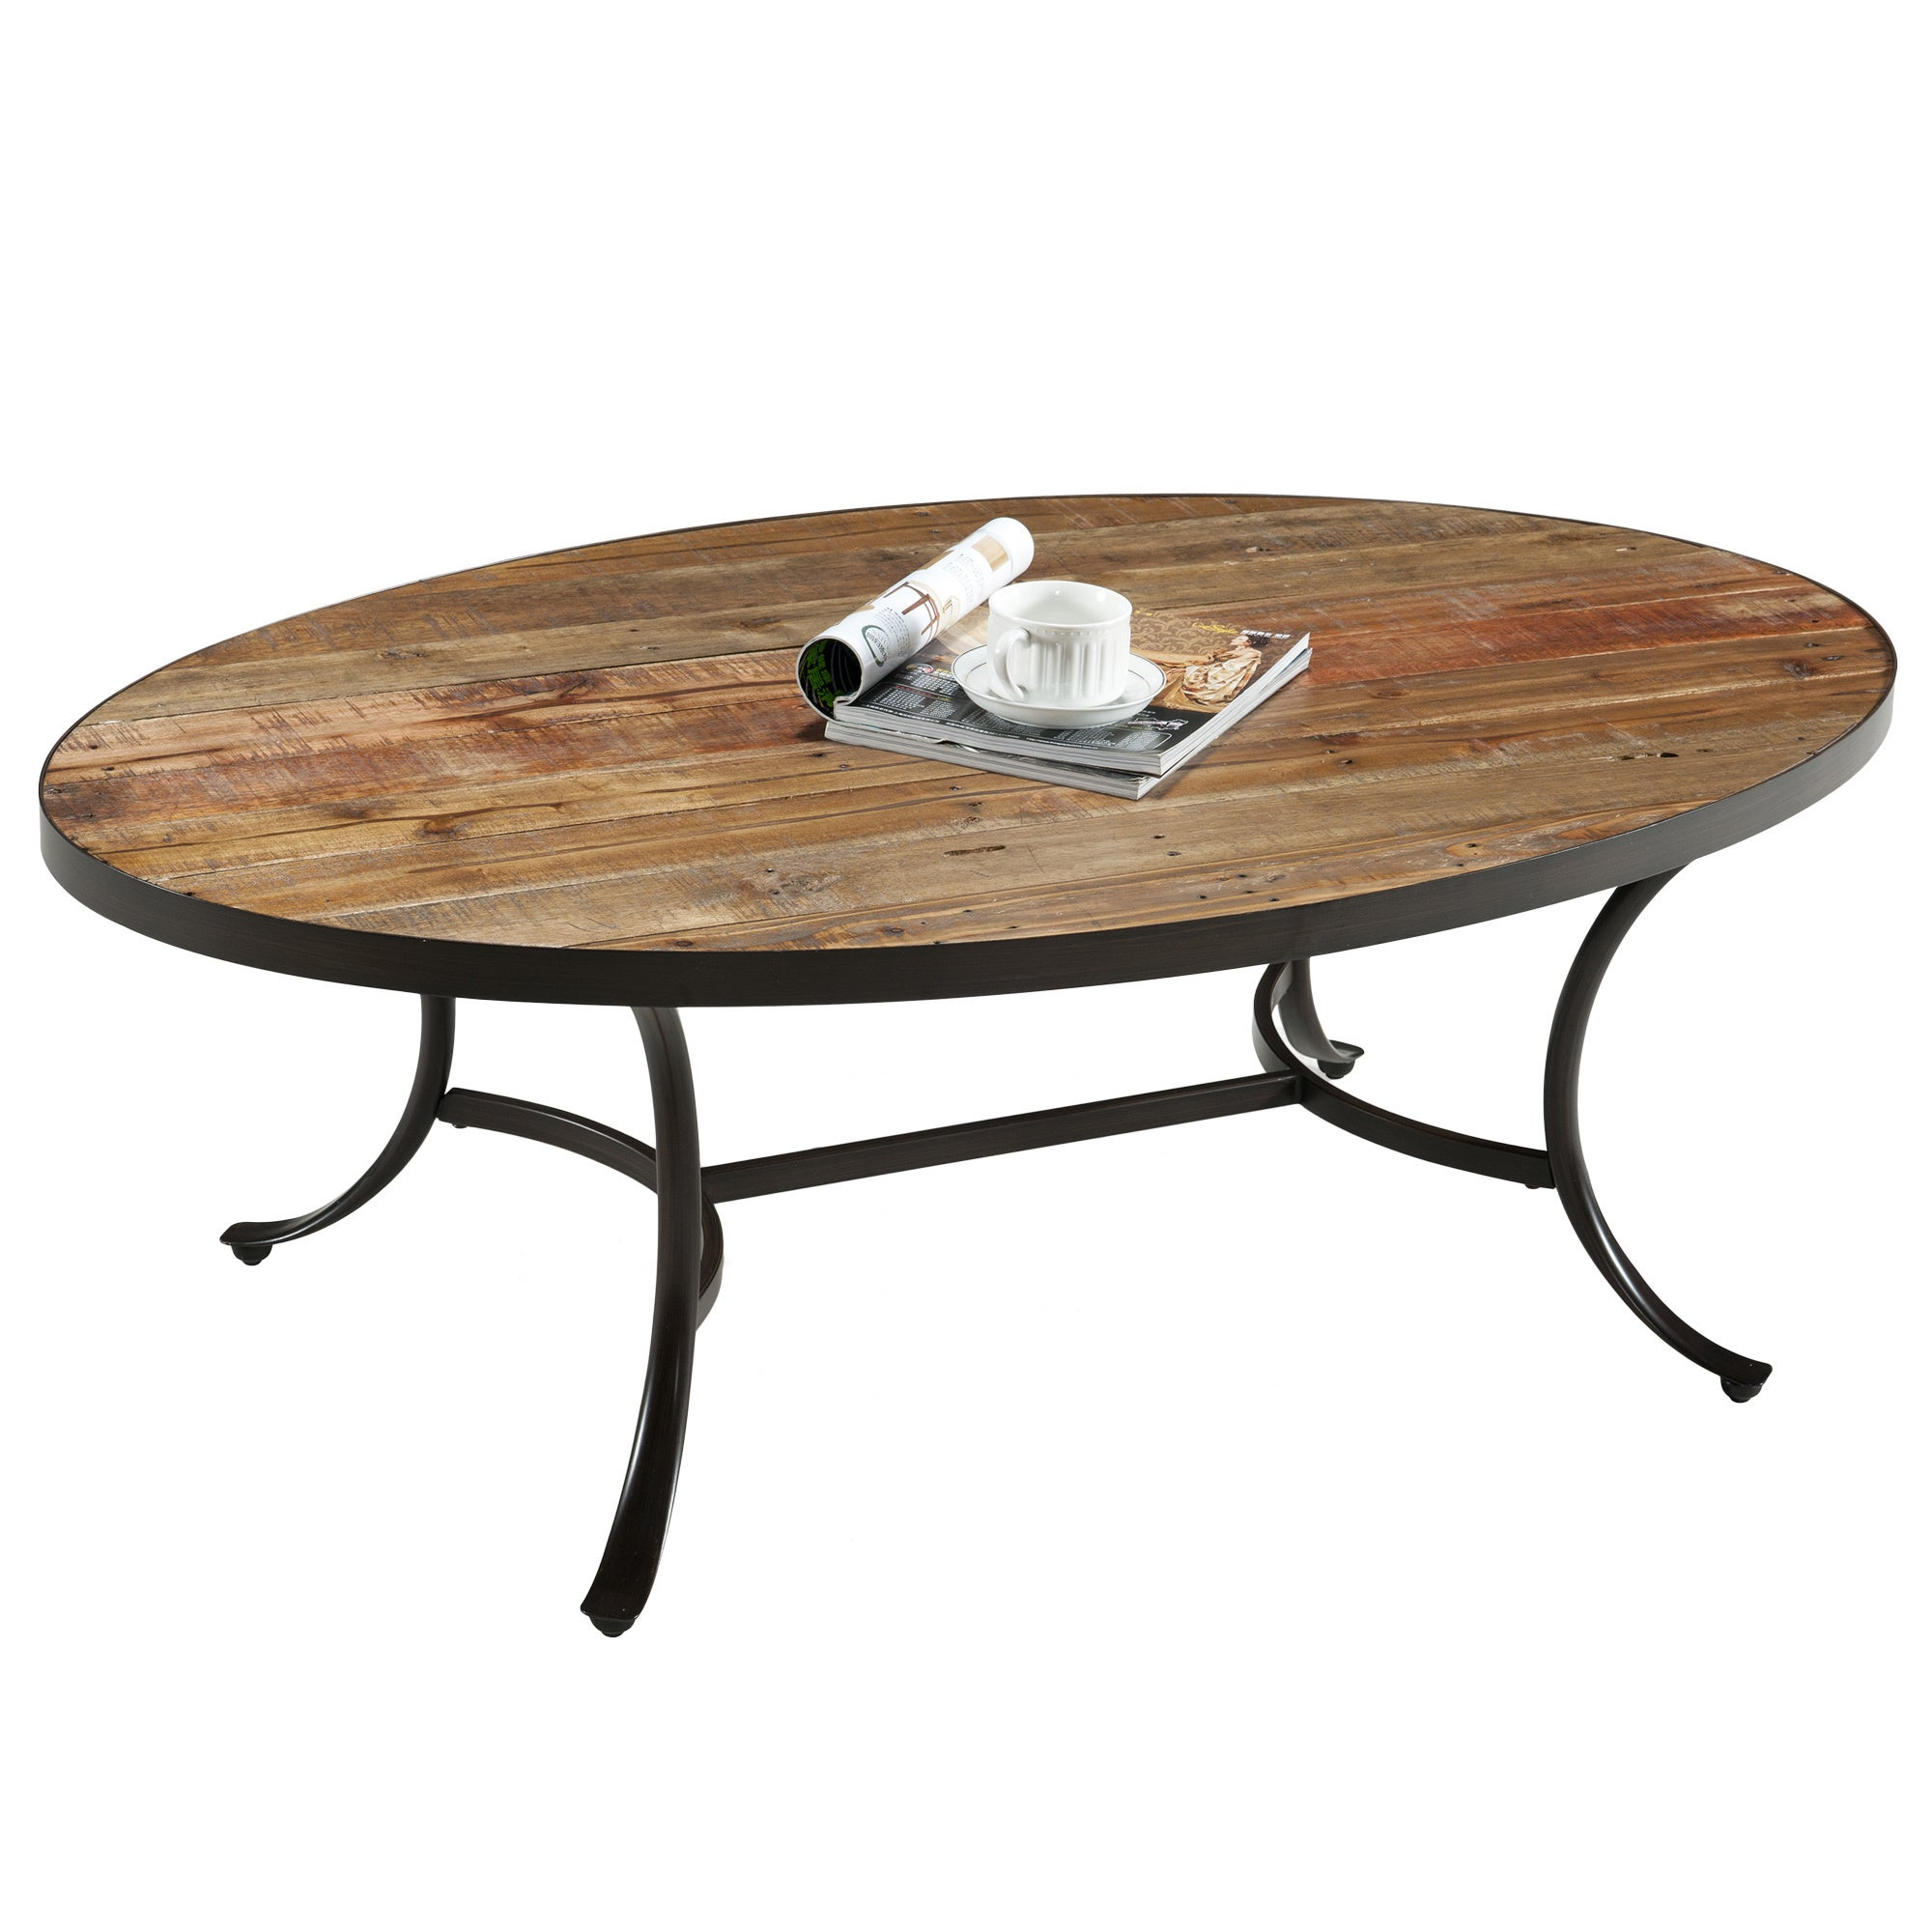 - Shop Carbon Loft Moscovitz Rustic Wood Oval Coffee Table